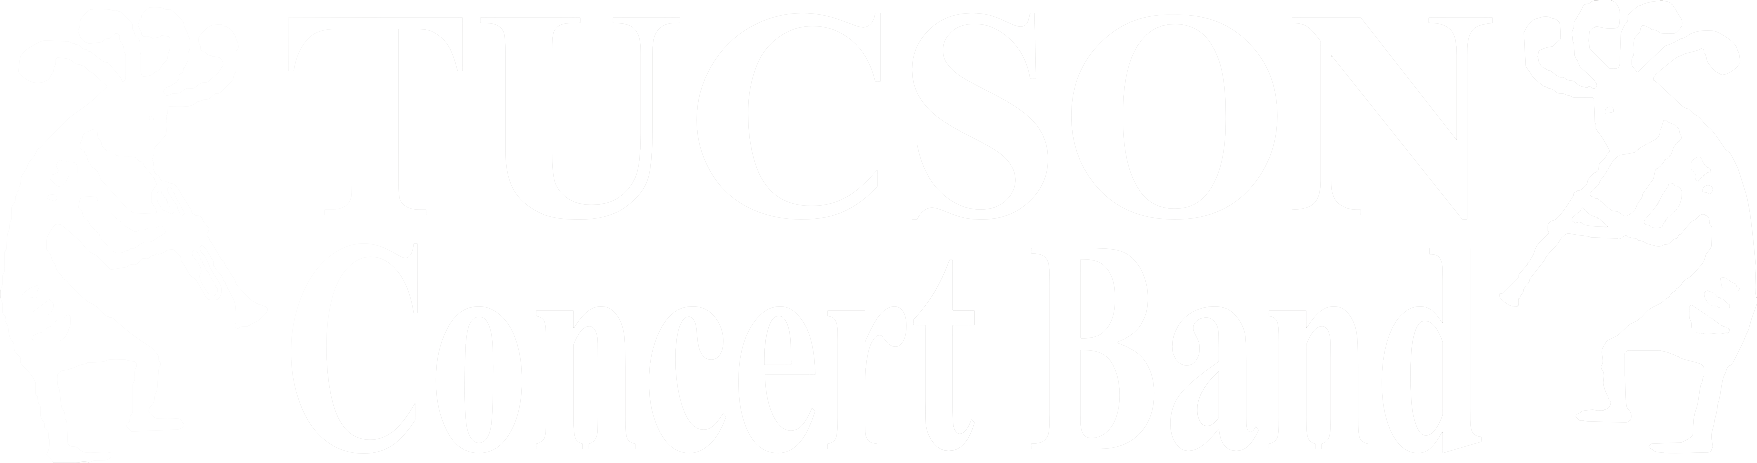 Tucson Concert Band